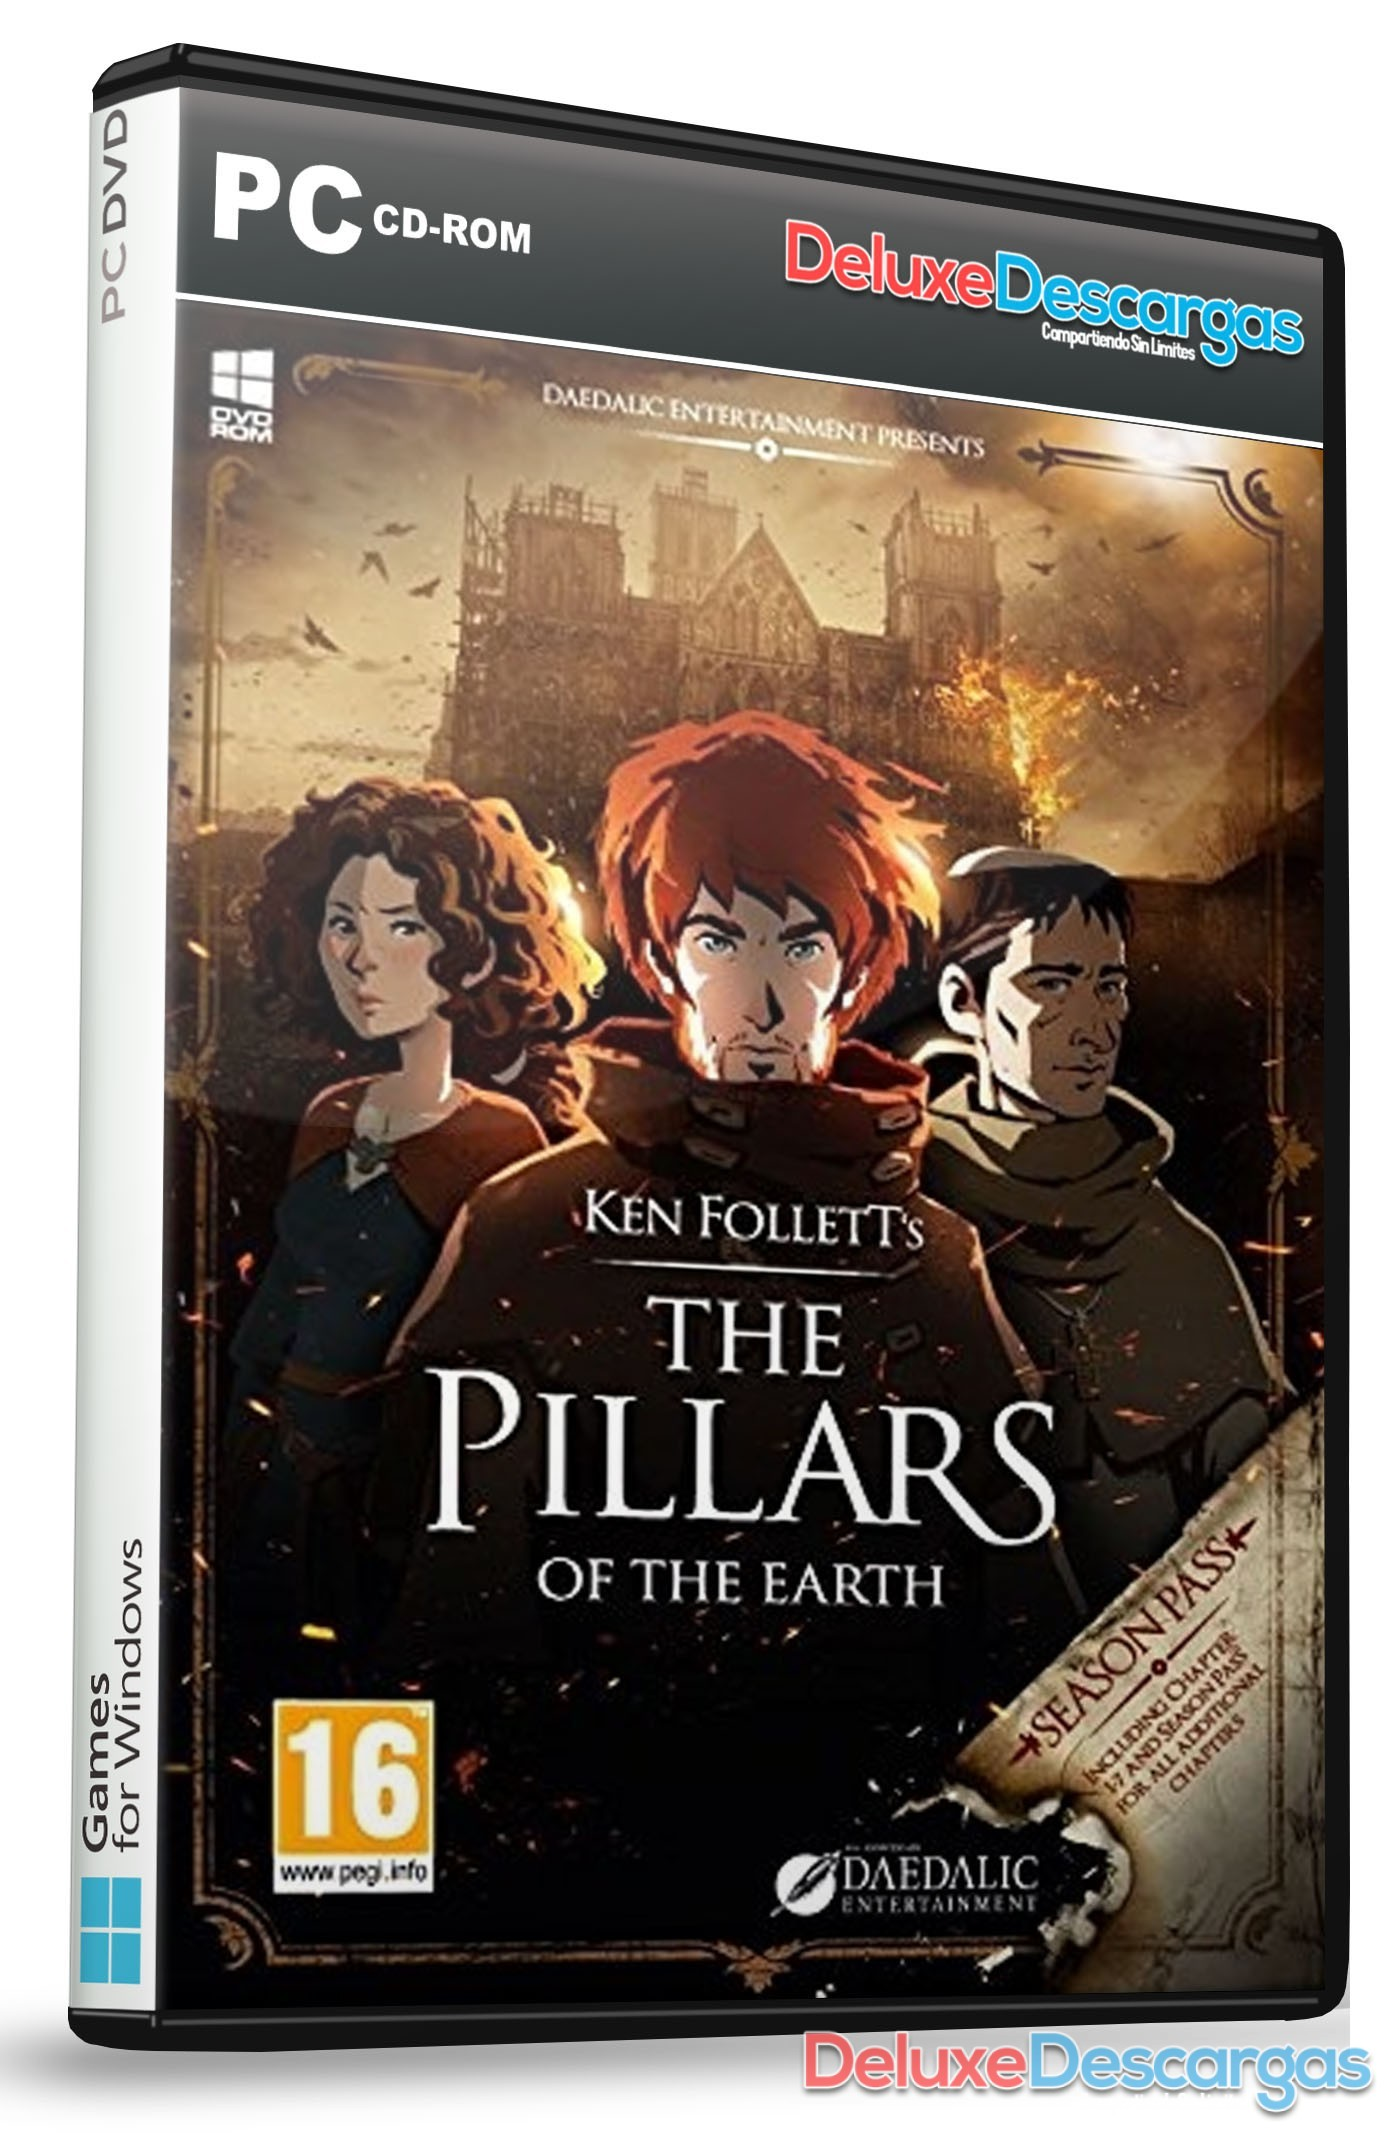 Ken Folet Ultimo Libro Descargar Ken Folletts The Pillars Of The Earth Libro 1 Y